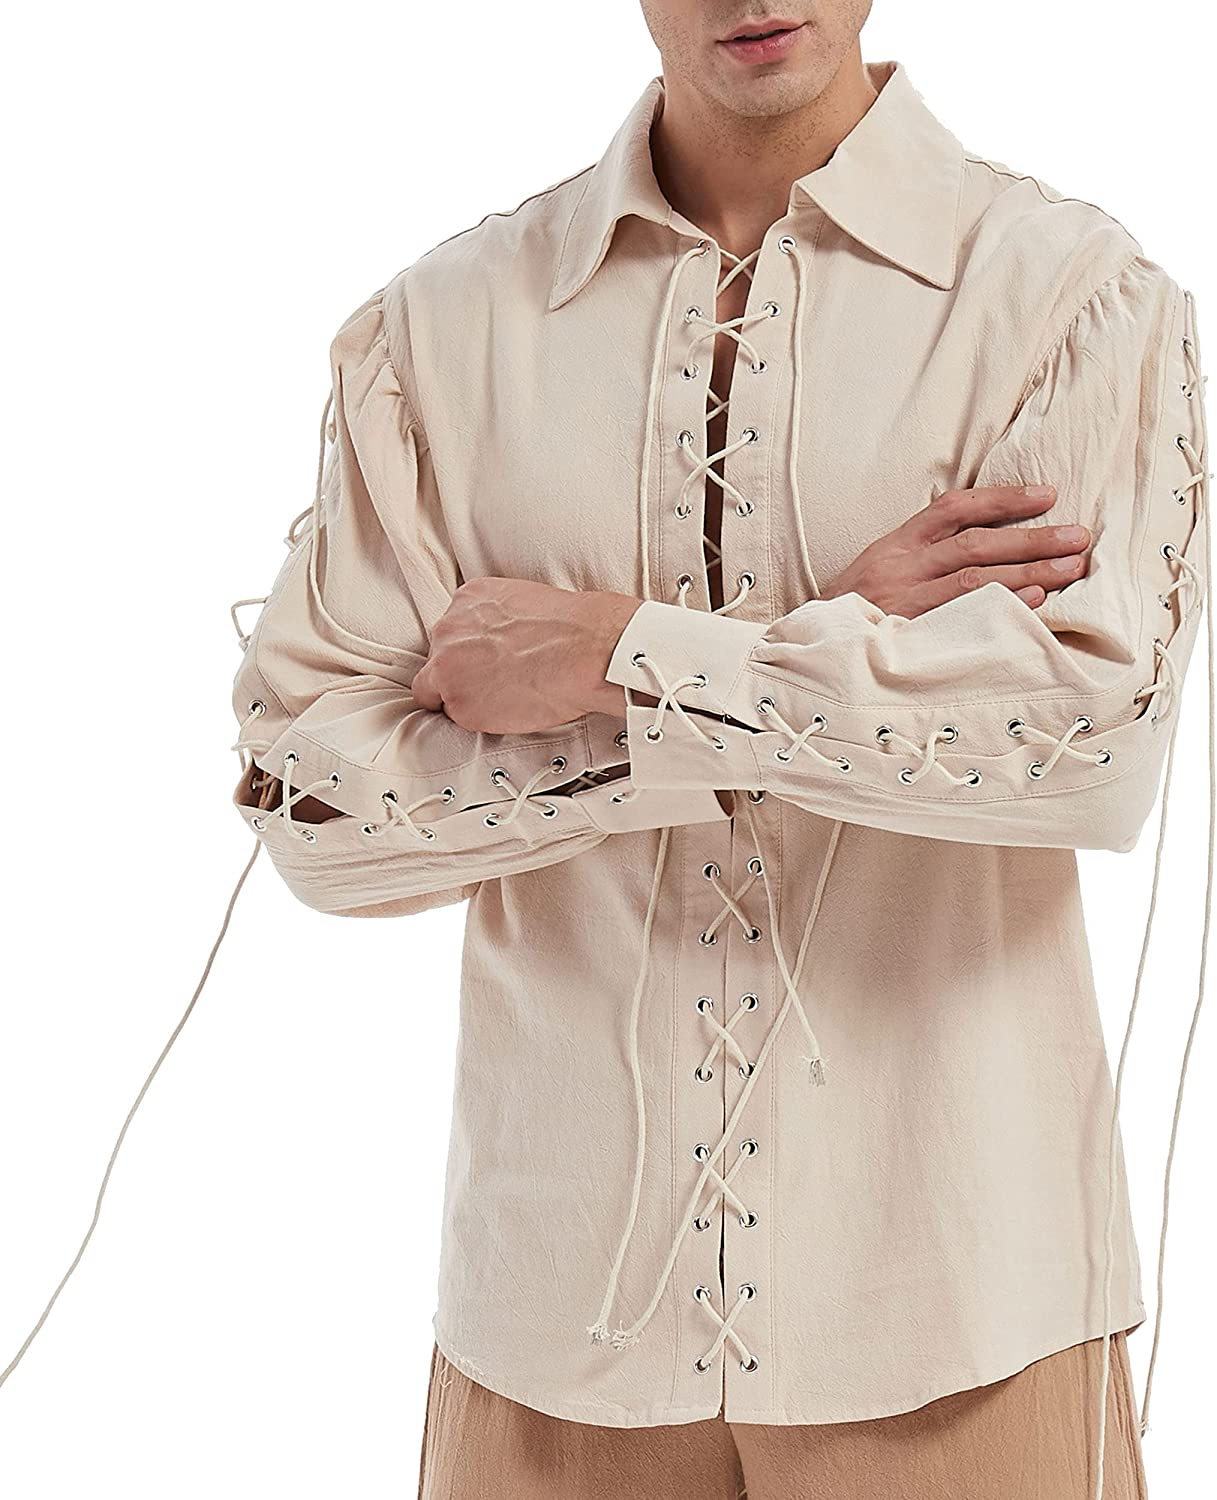 Moomphya Men's Super-cheap Medieval Pirate Gothic Sleeve Long Opening large release sale Lace-Up Renais